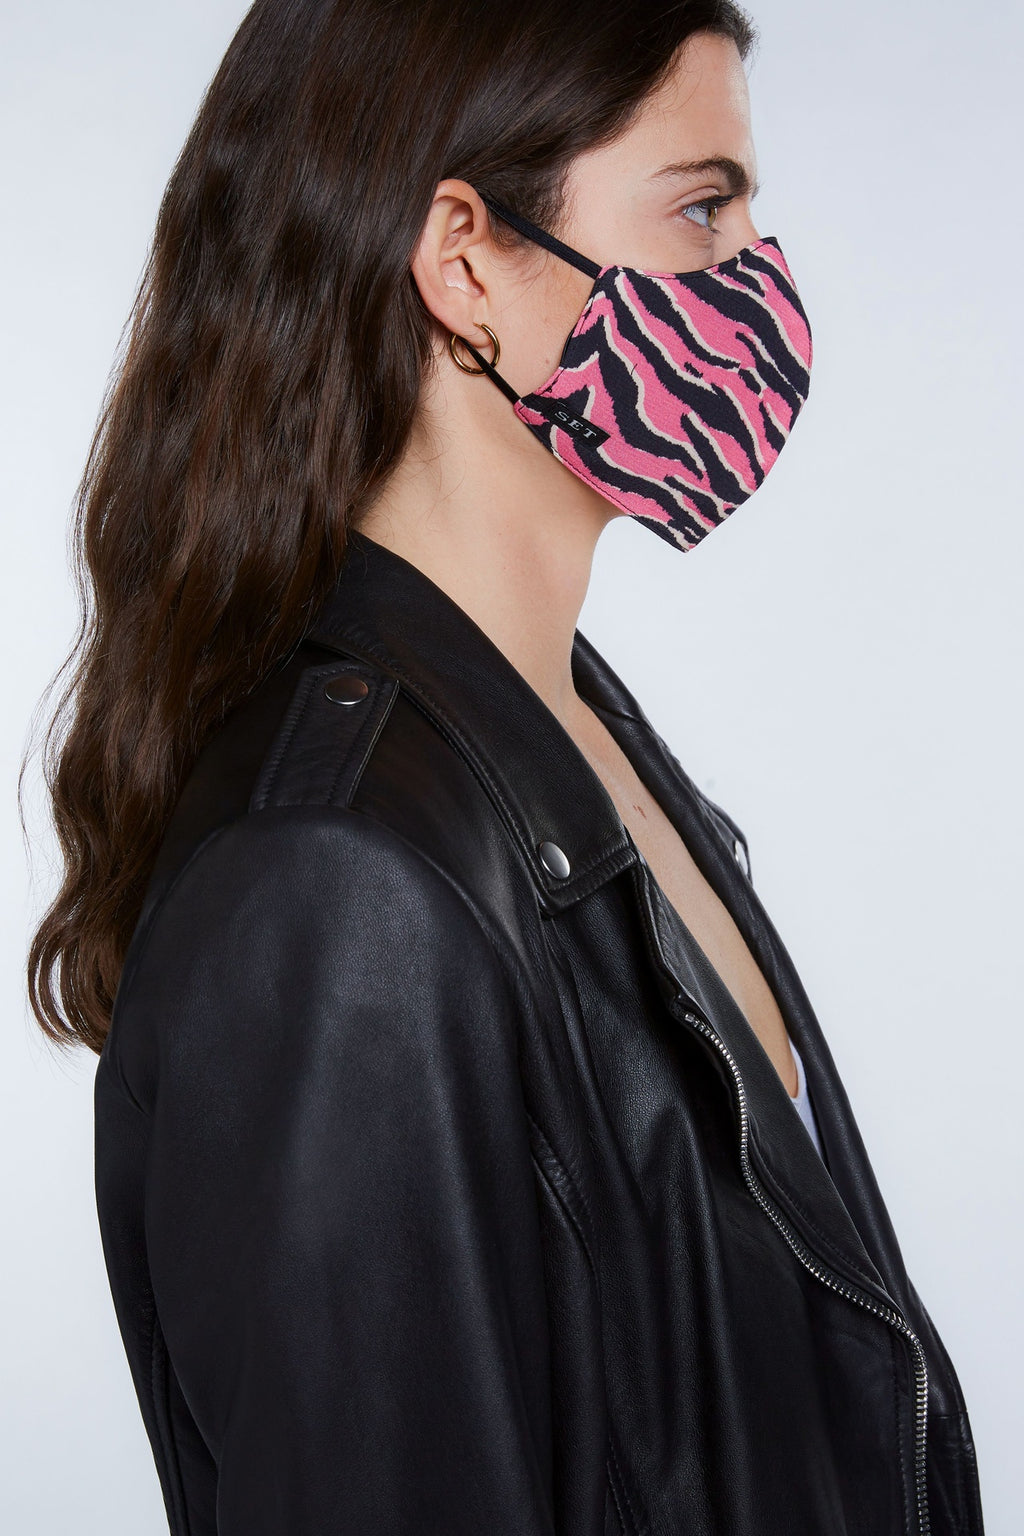 Mouth And Nose Mask Pink Tiger Print